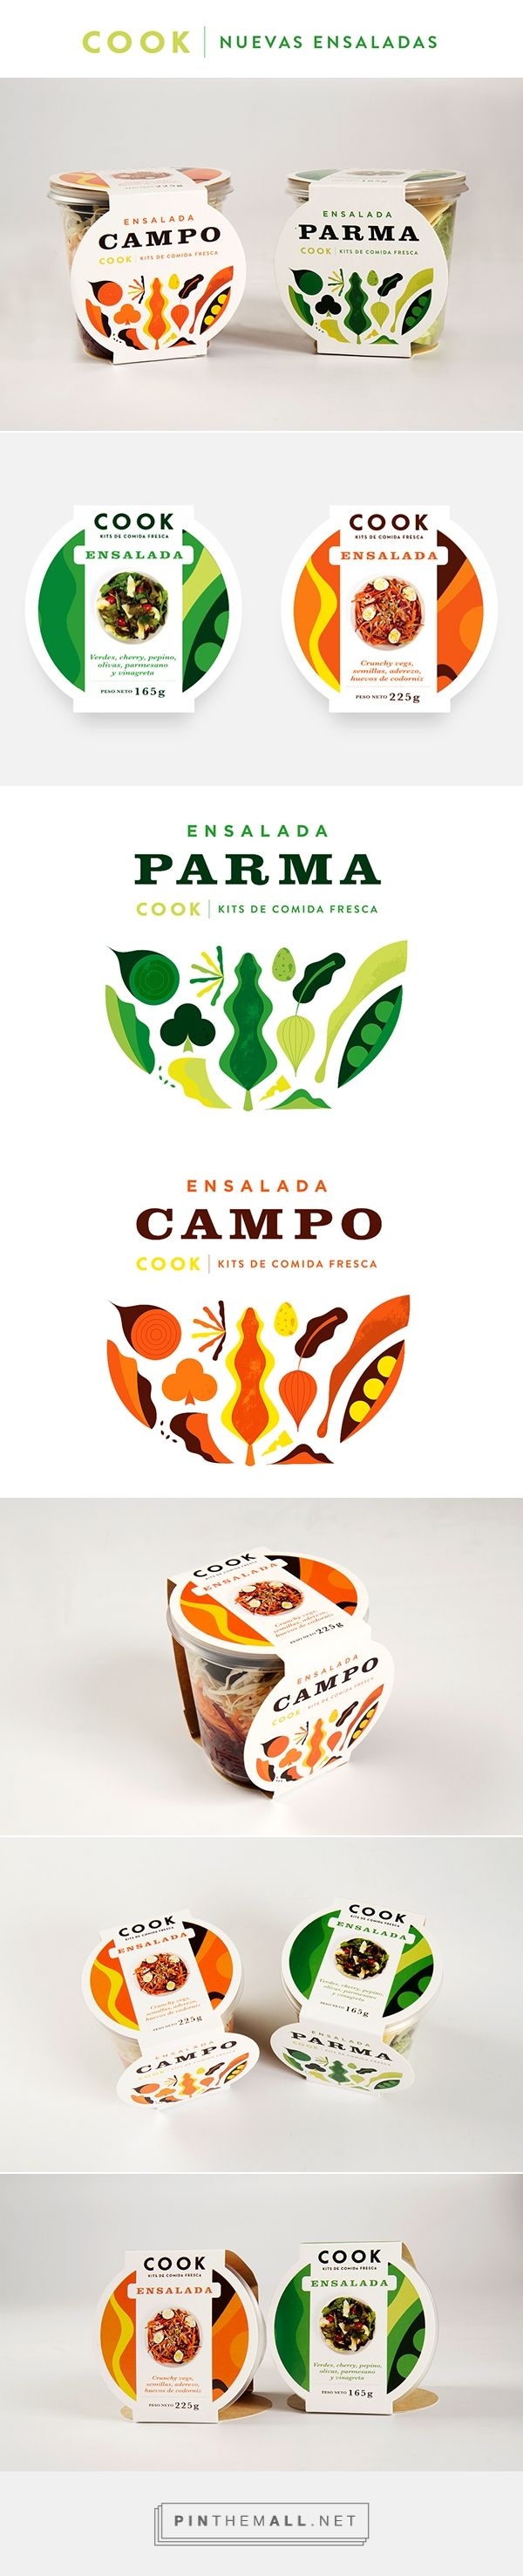 COOK ENSALADAS on Behance